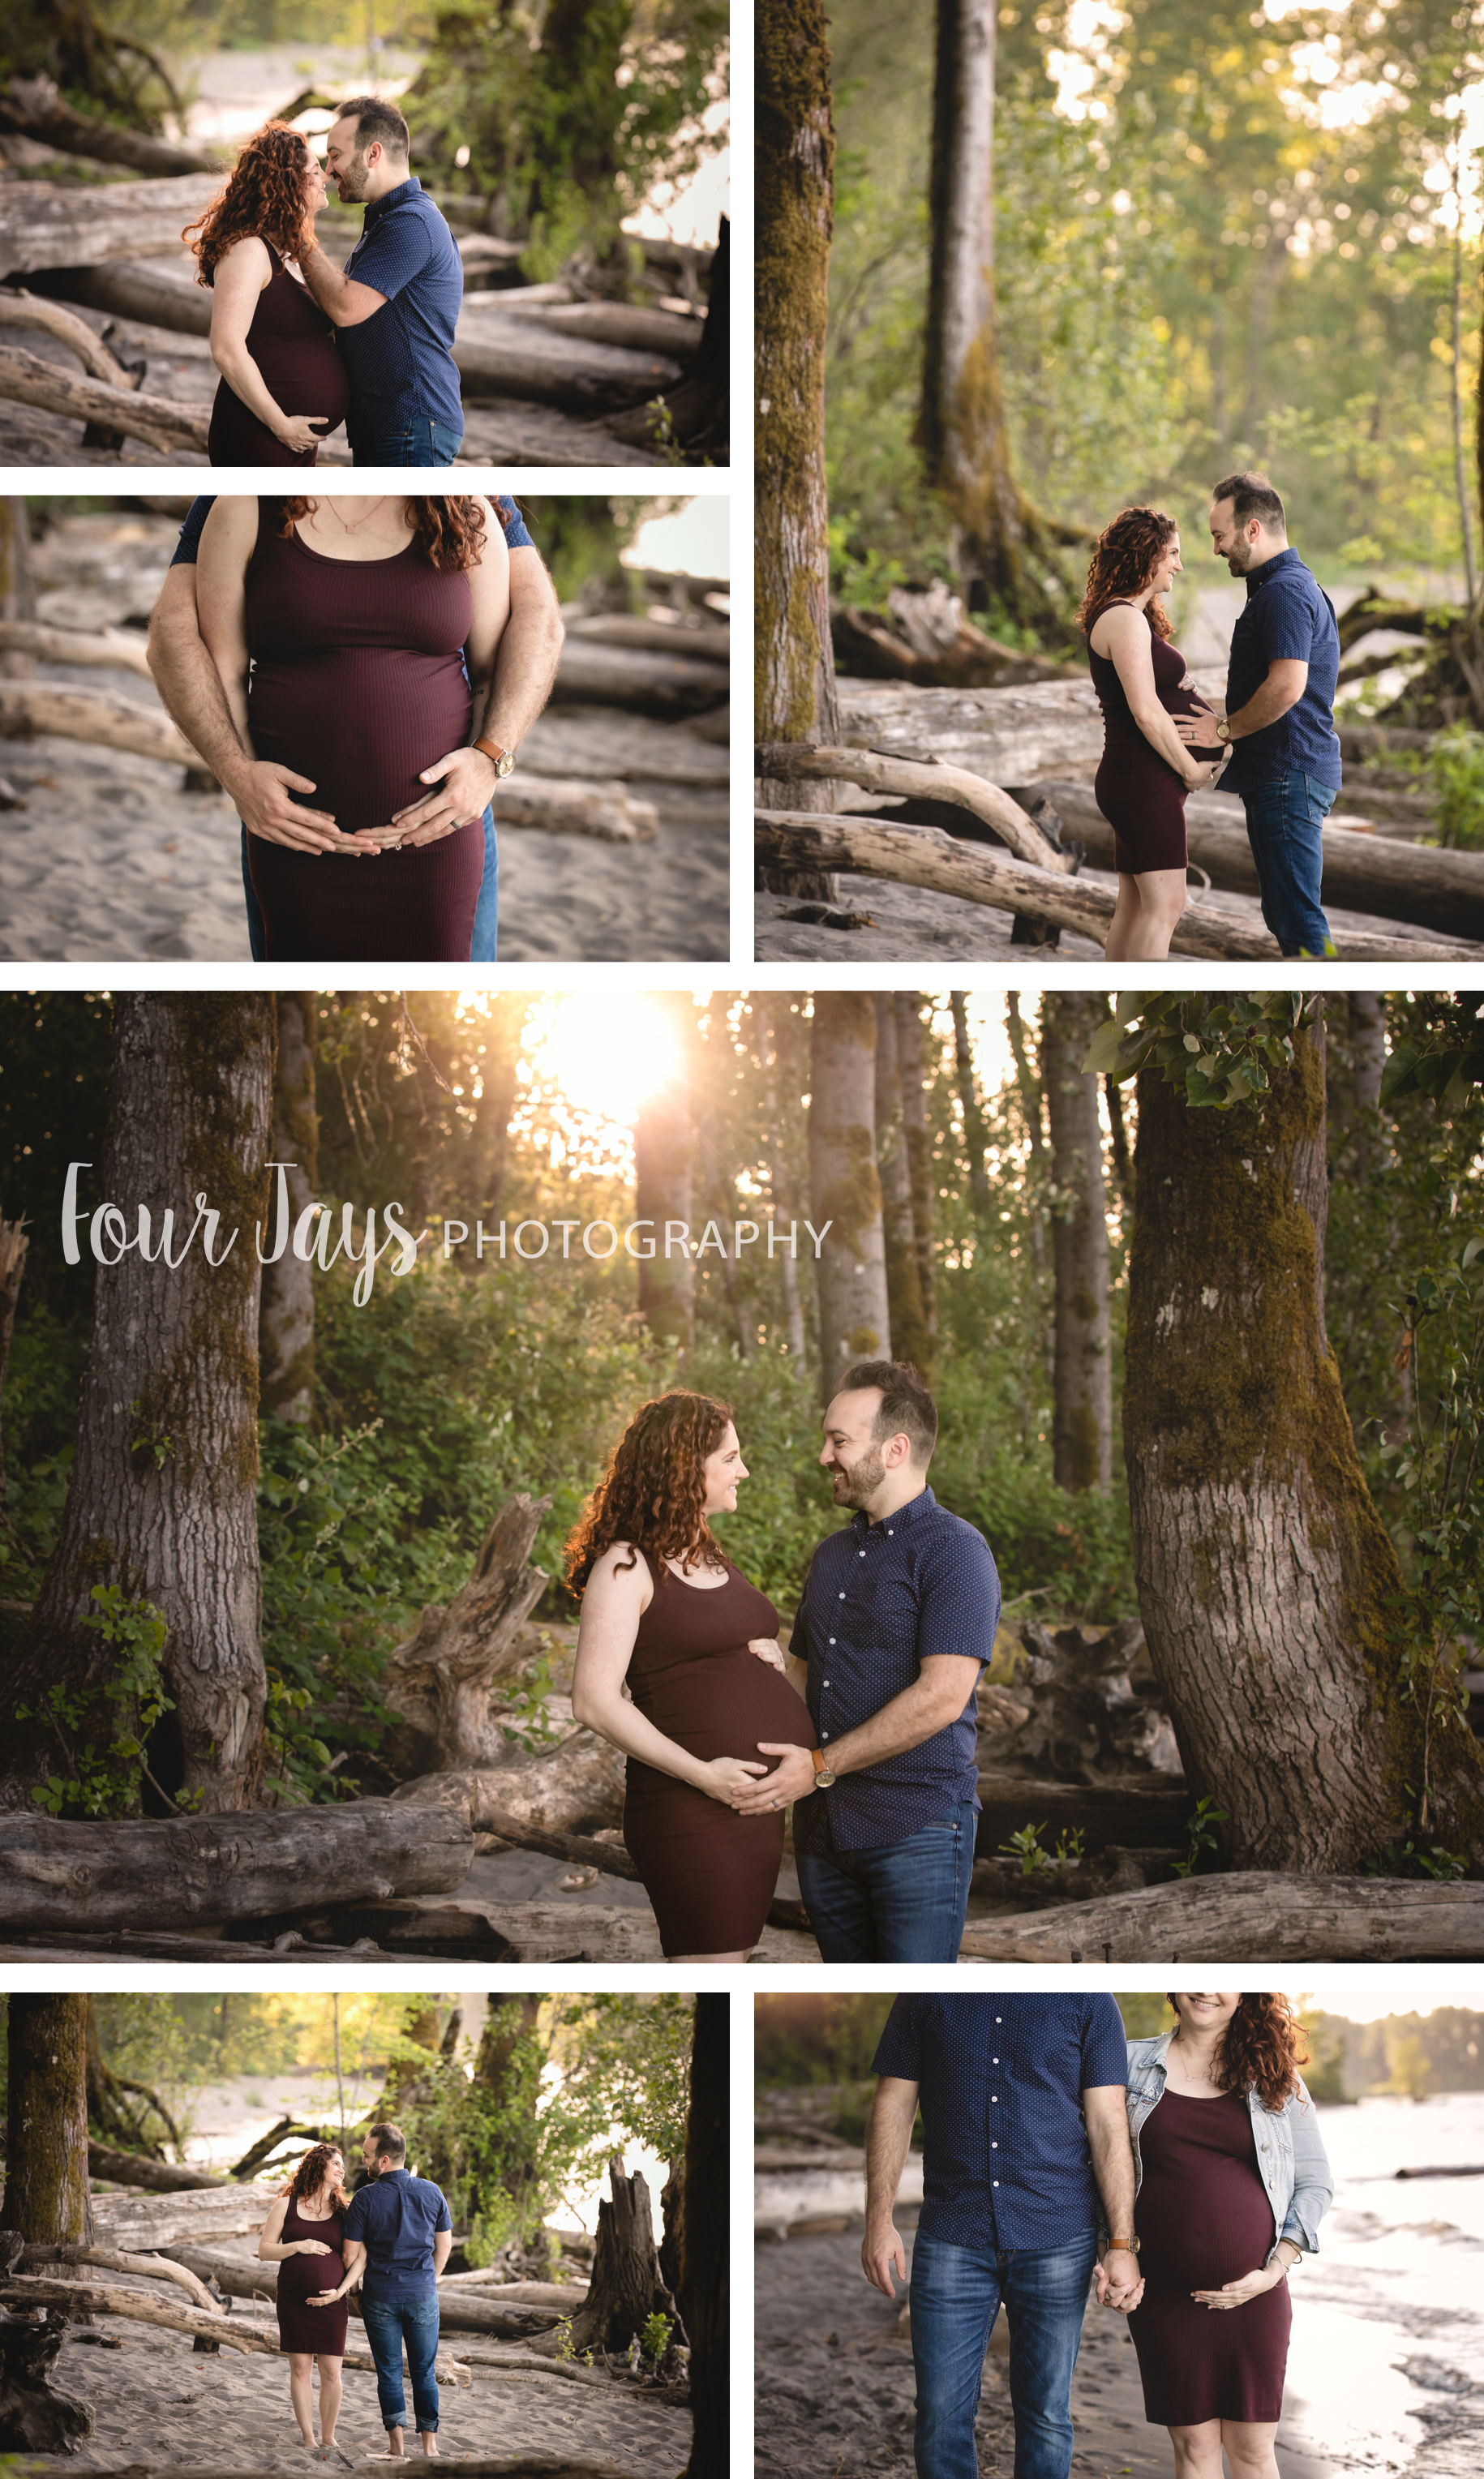 best outdoor maternity session photographer portland oregon or.jpg